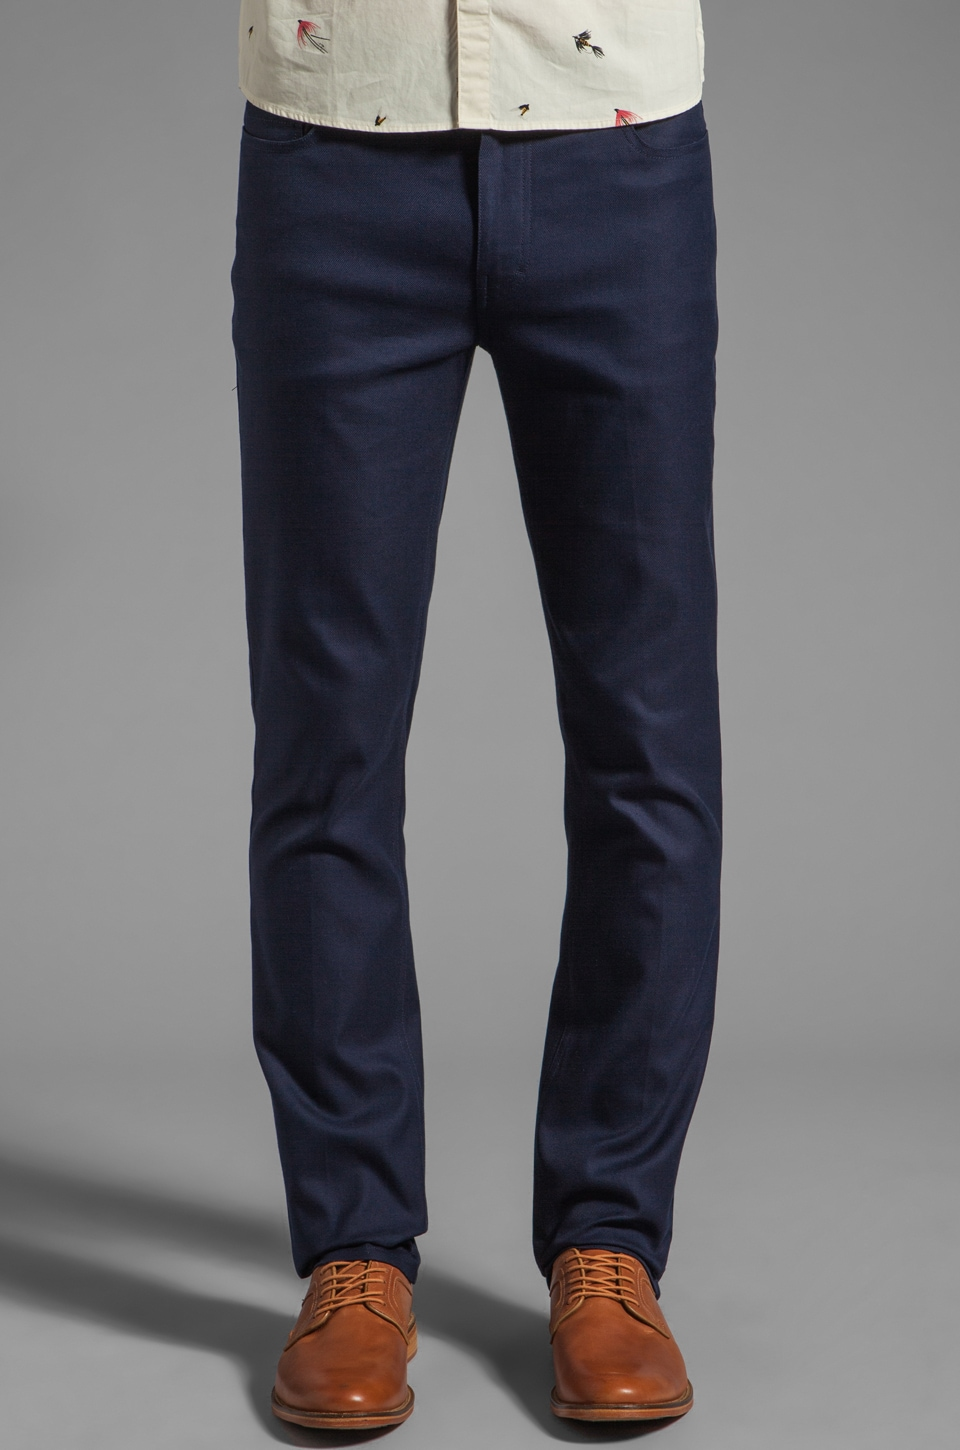 FARAH VINTAGE The Mills Slim Fit Hopsack Jean in Midnight